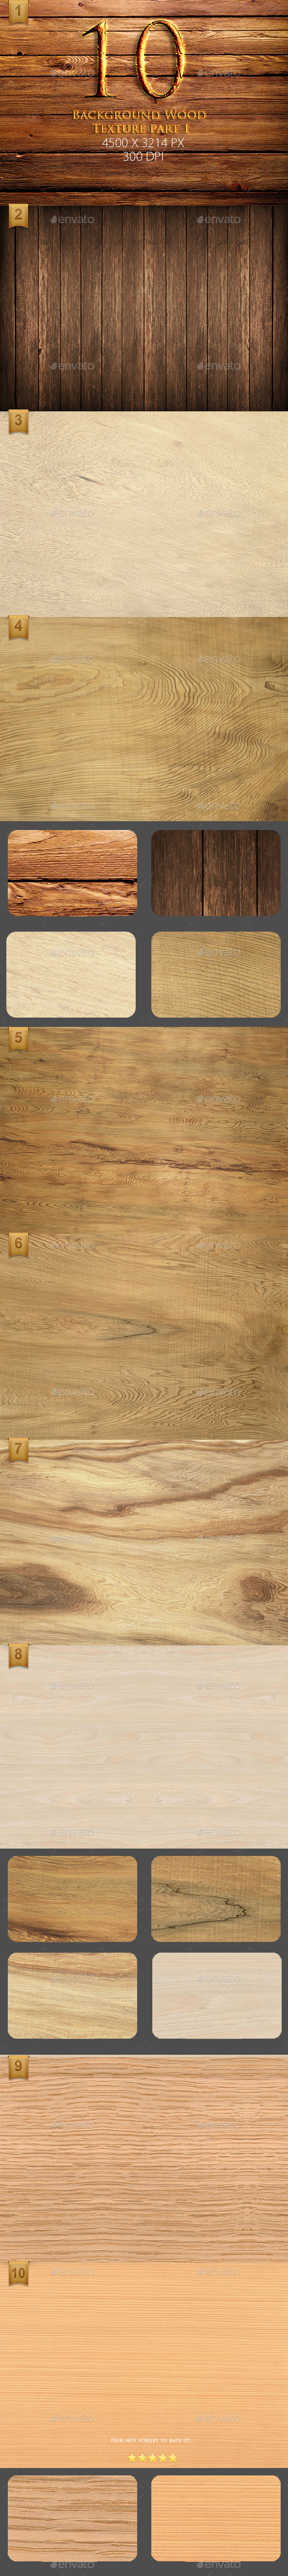 10 Background Wood Texture part 1  - Wood Textures